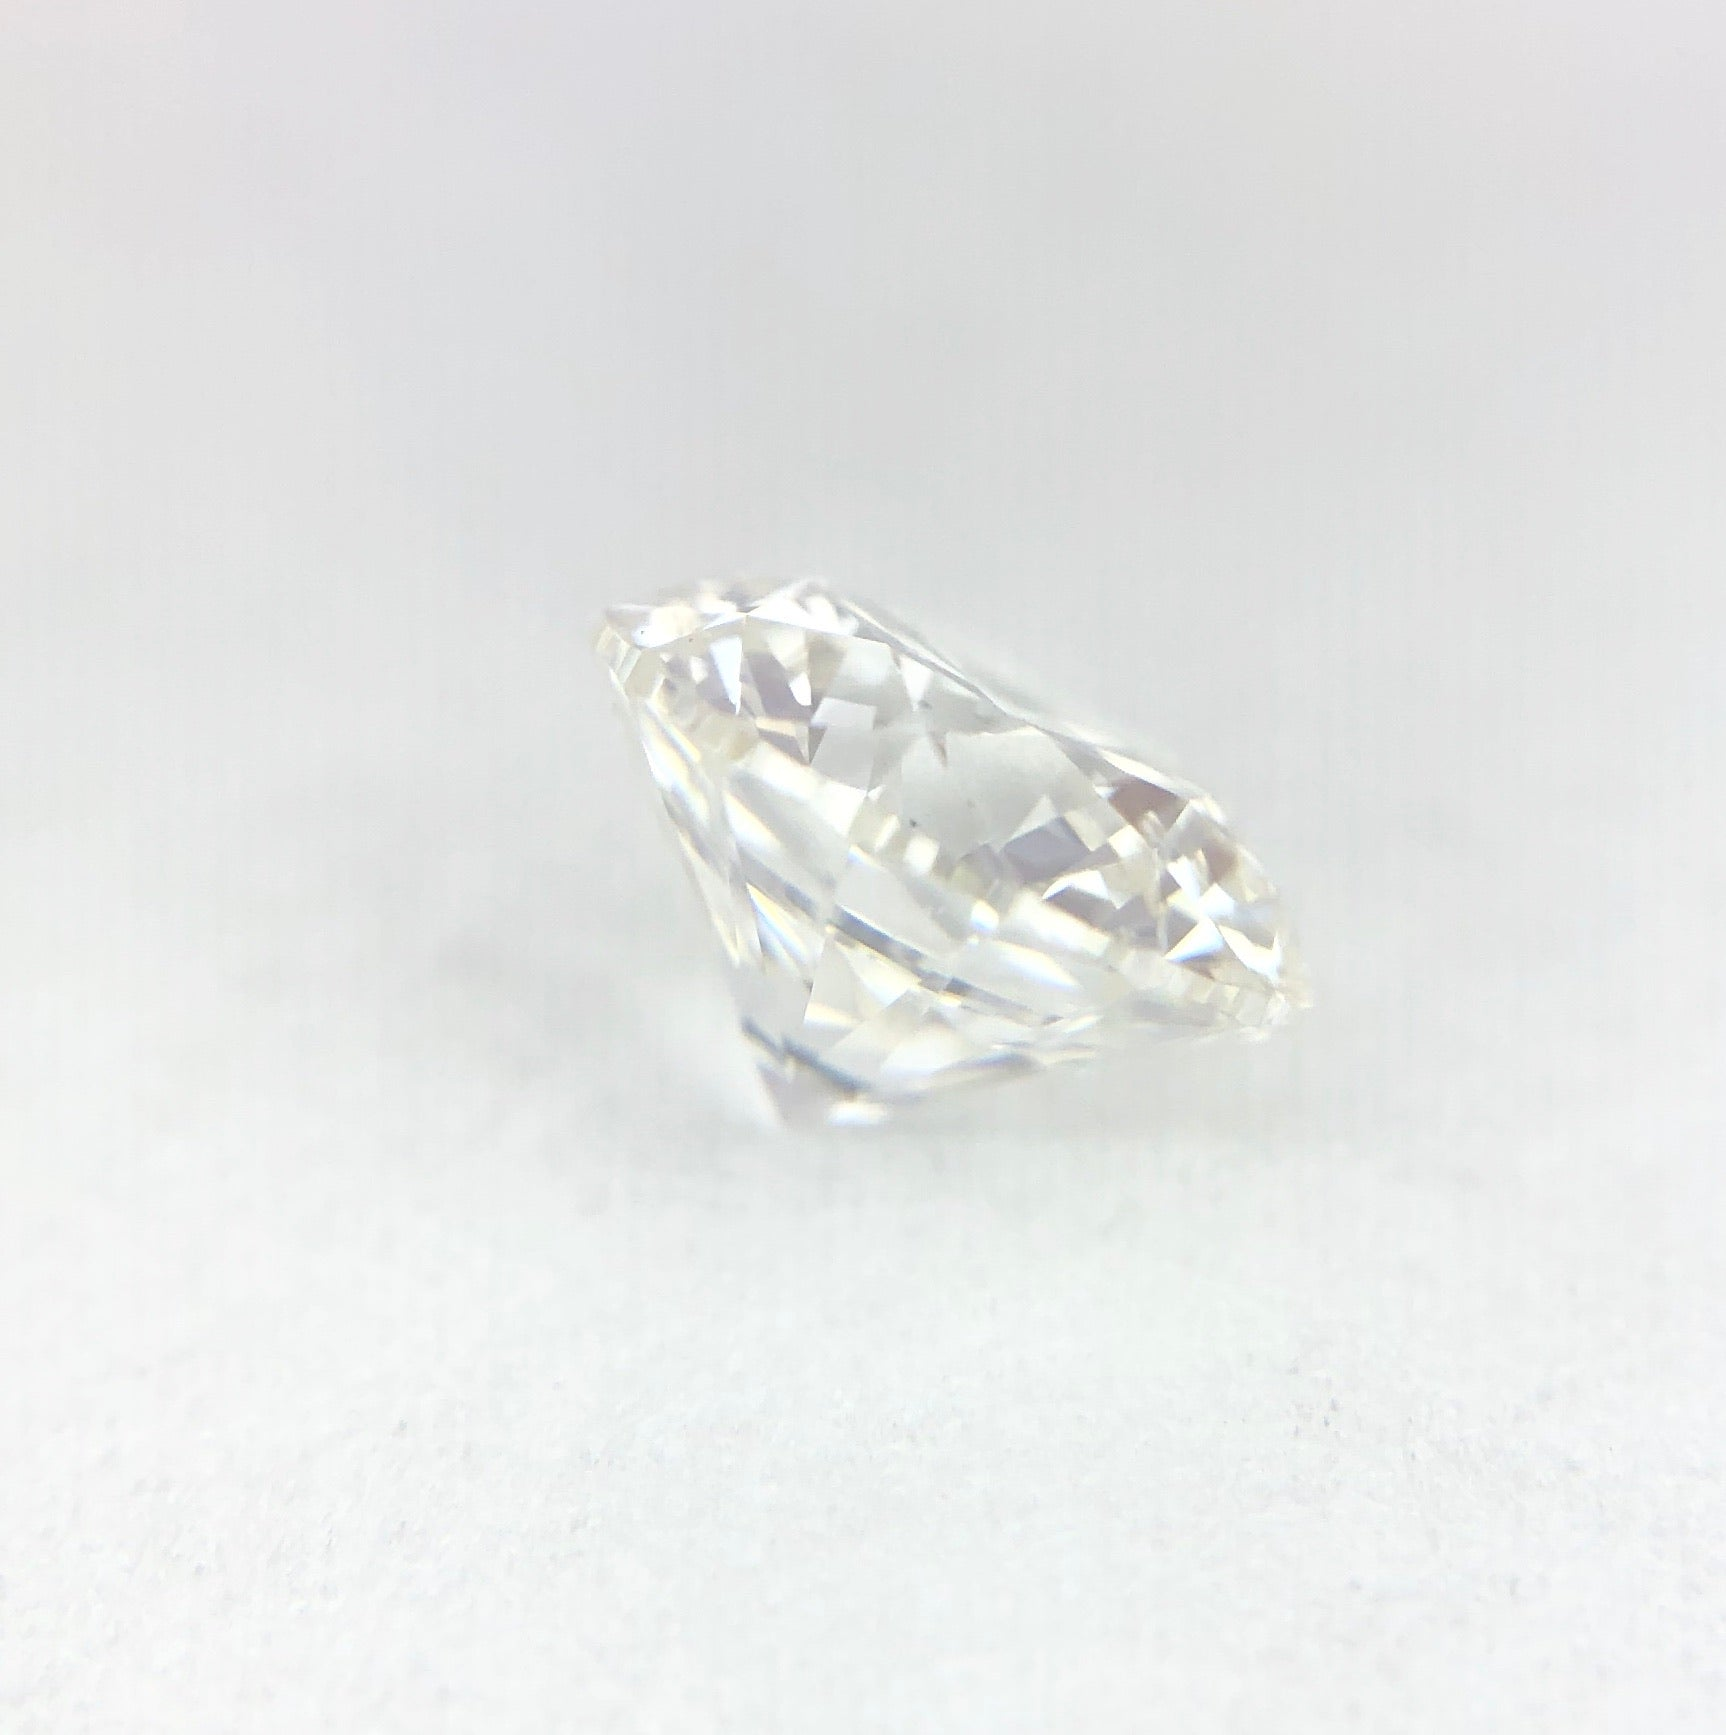 1.14 carat Round Brilliant Cut Diamond